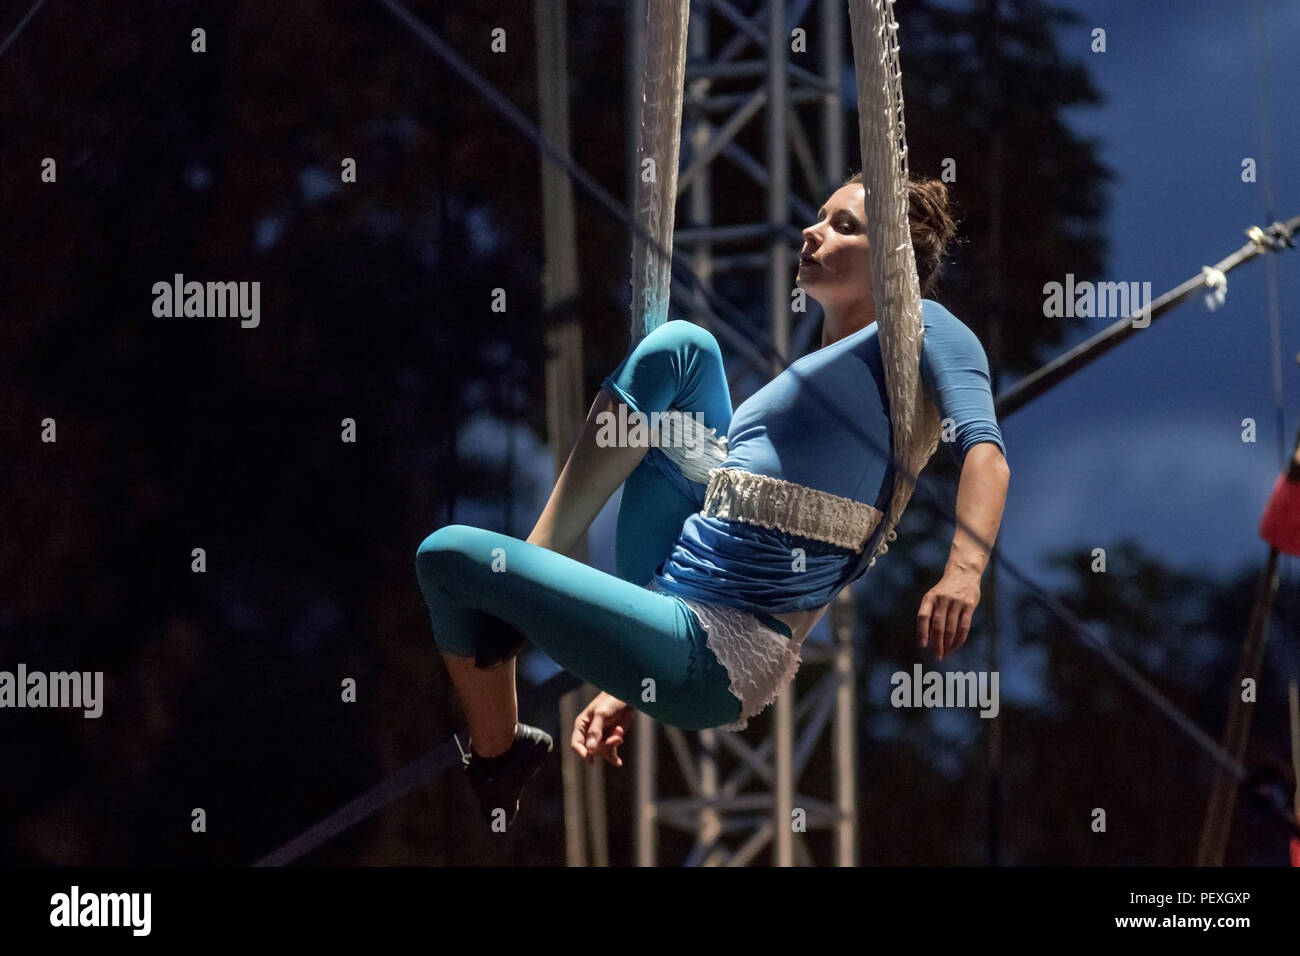 Letna, Prague - July 15: Performer, the artist floats over the stage, tied with fabricduring XV. International Festival of New Circus and Theatre on J - Stock Image